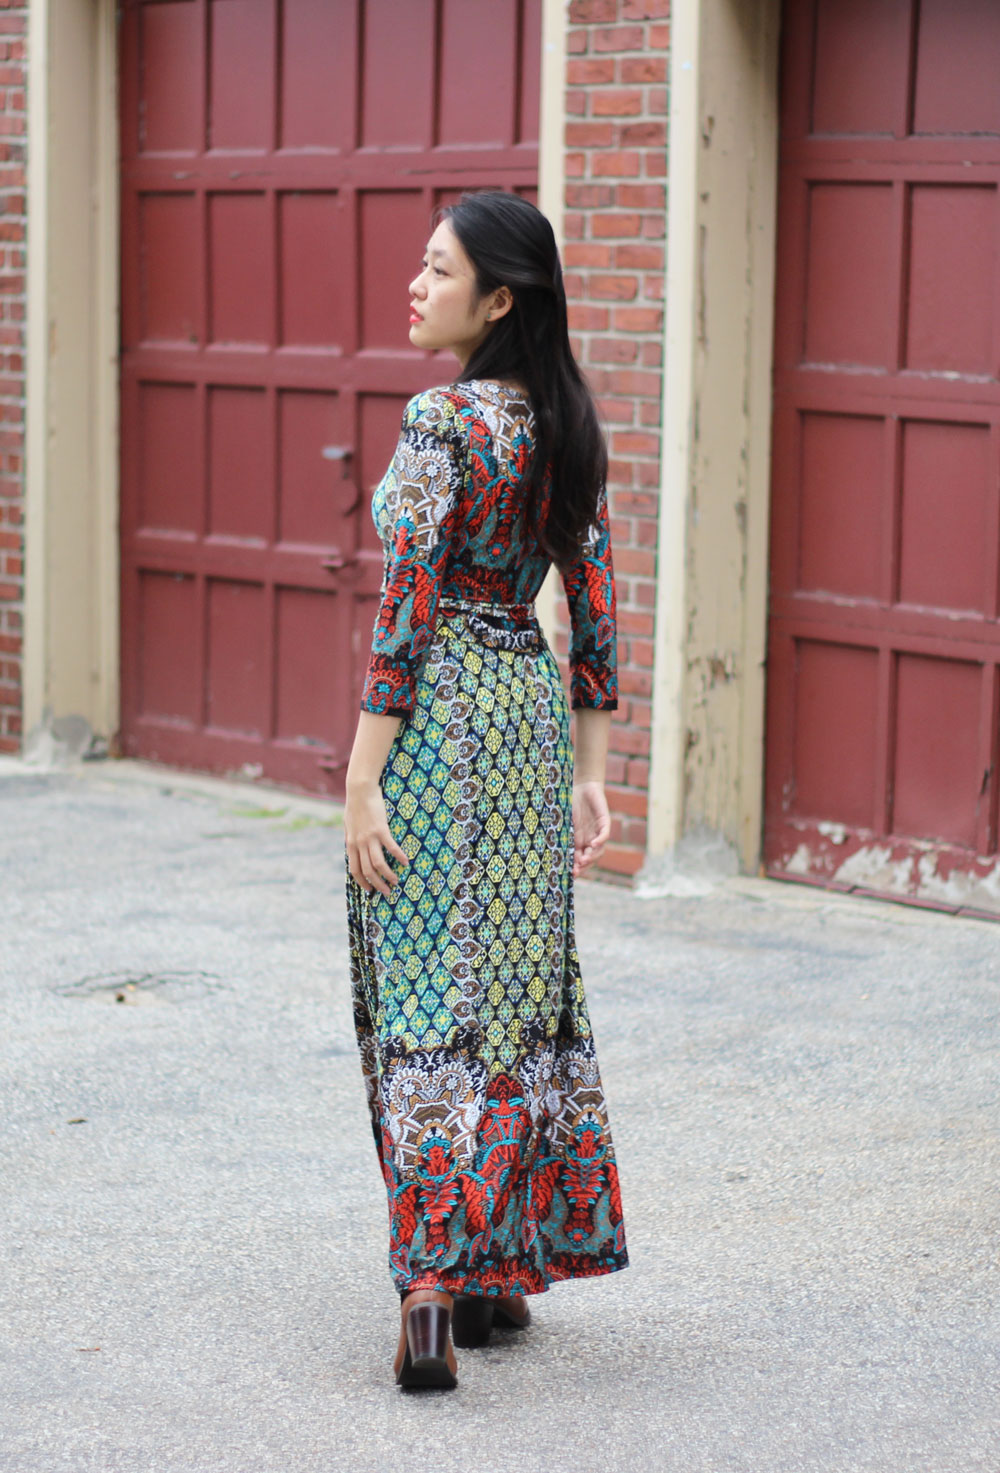 Daily look Colorful Mixed Print Maxi Dress